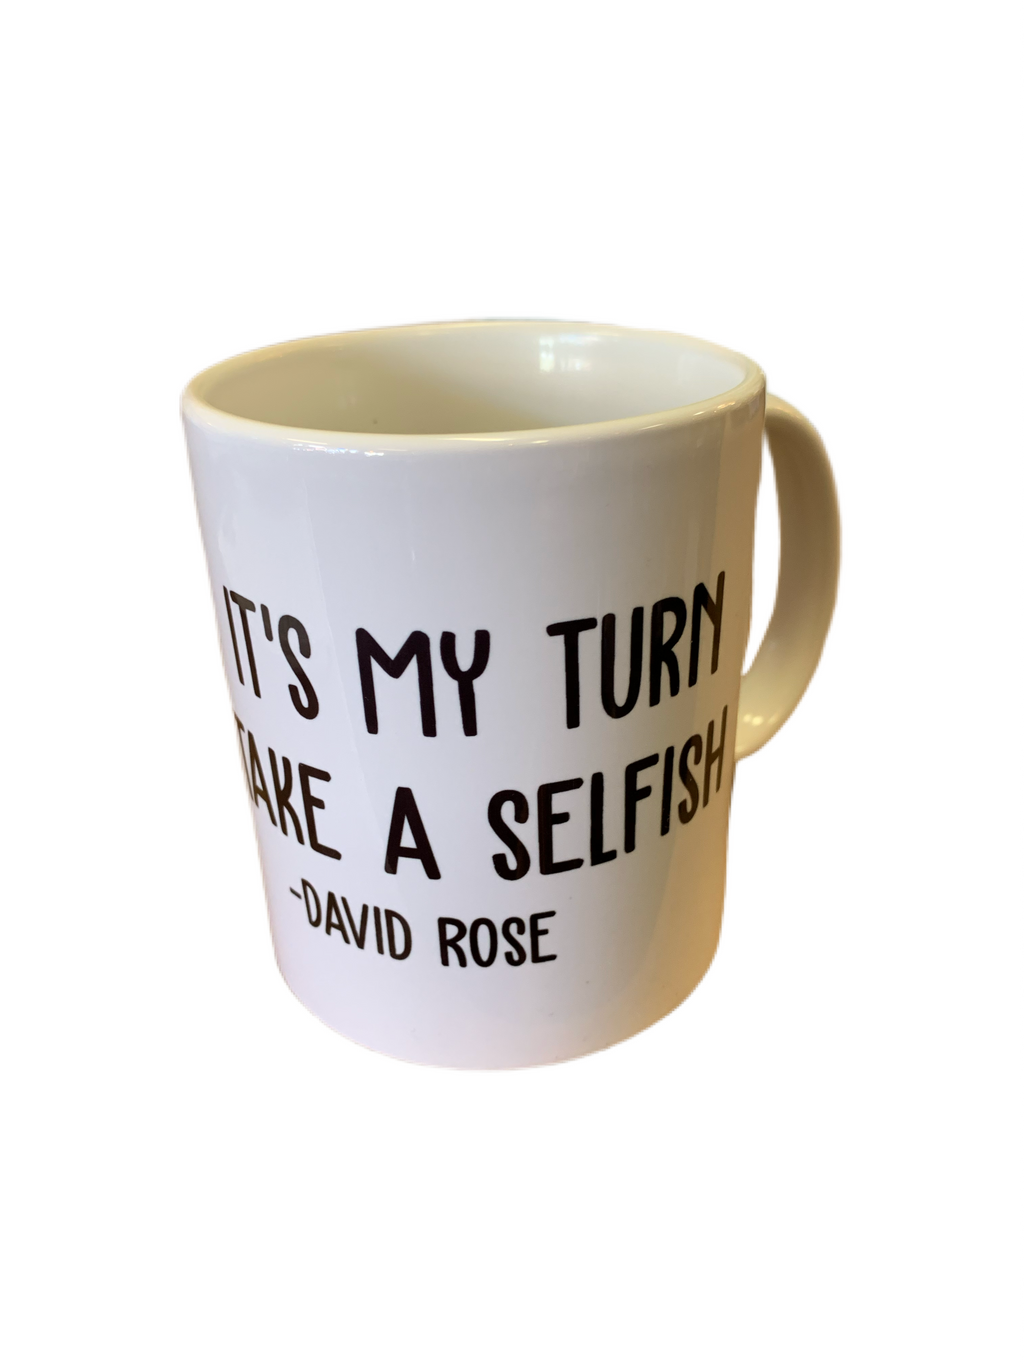 It's My Turn To Take A Selfish 11oz mug